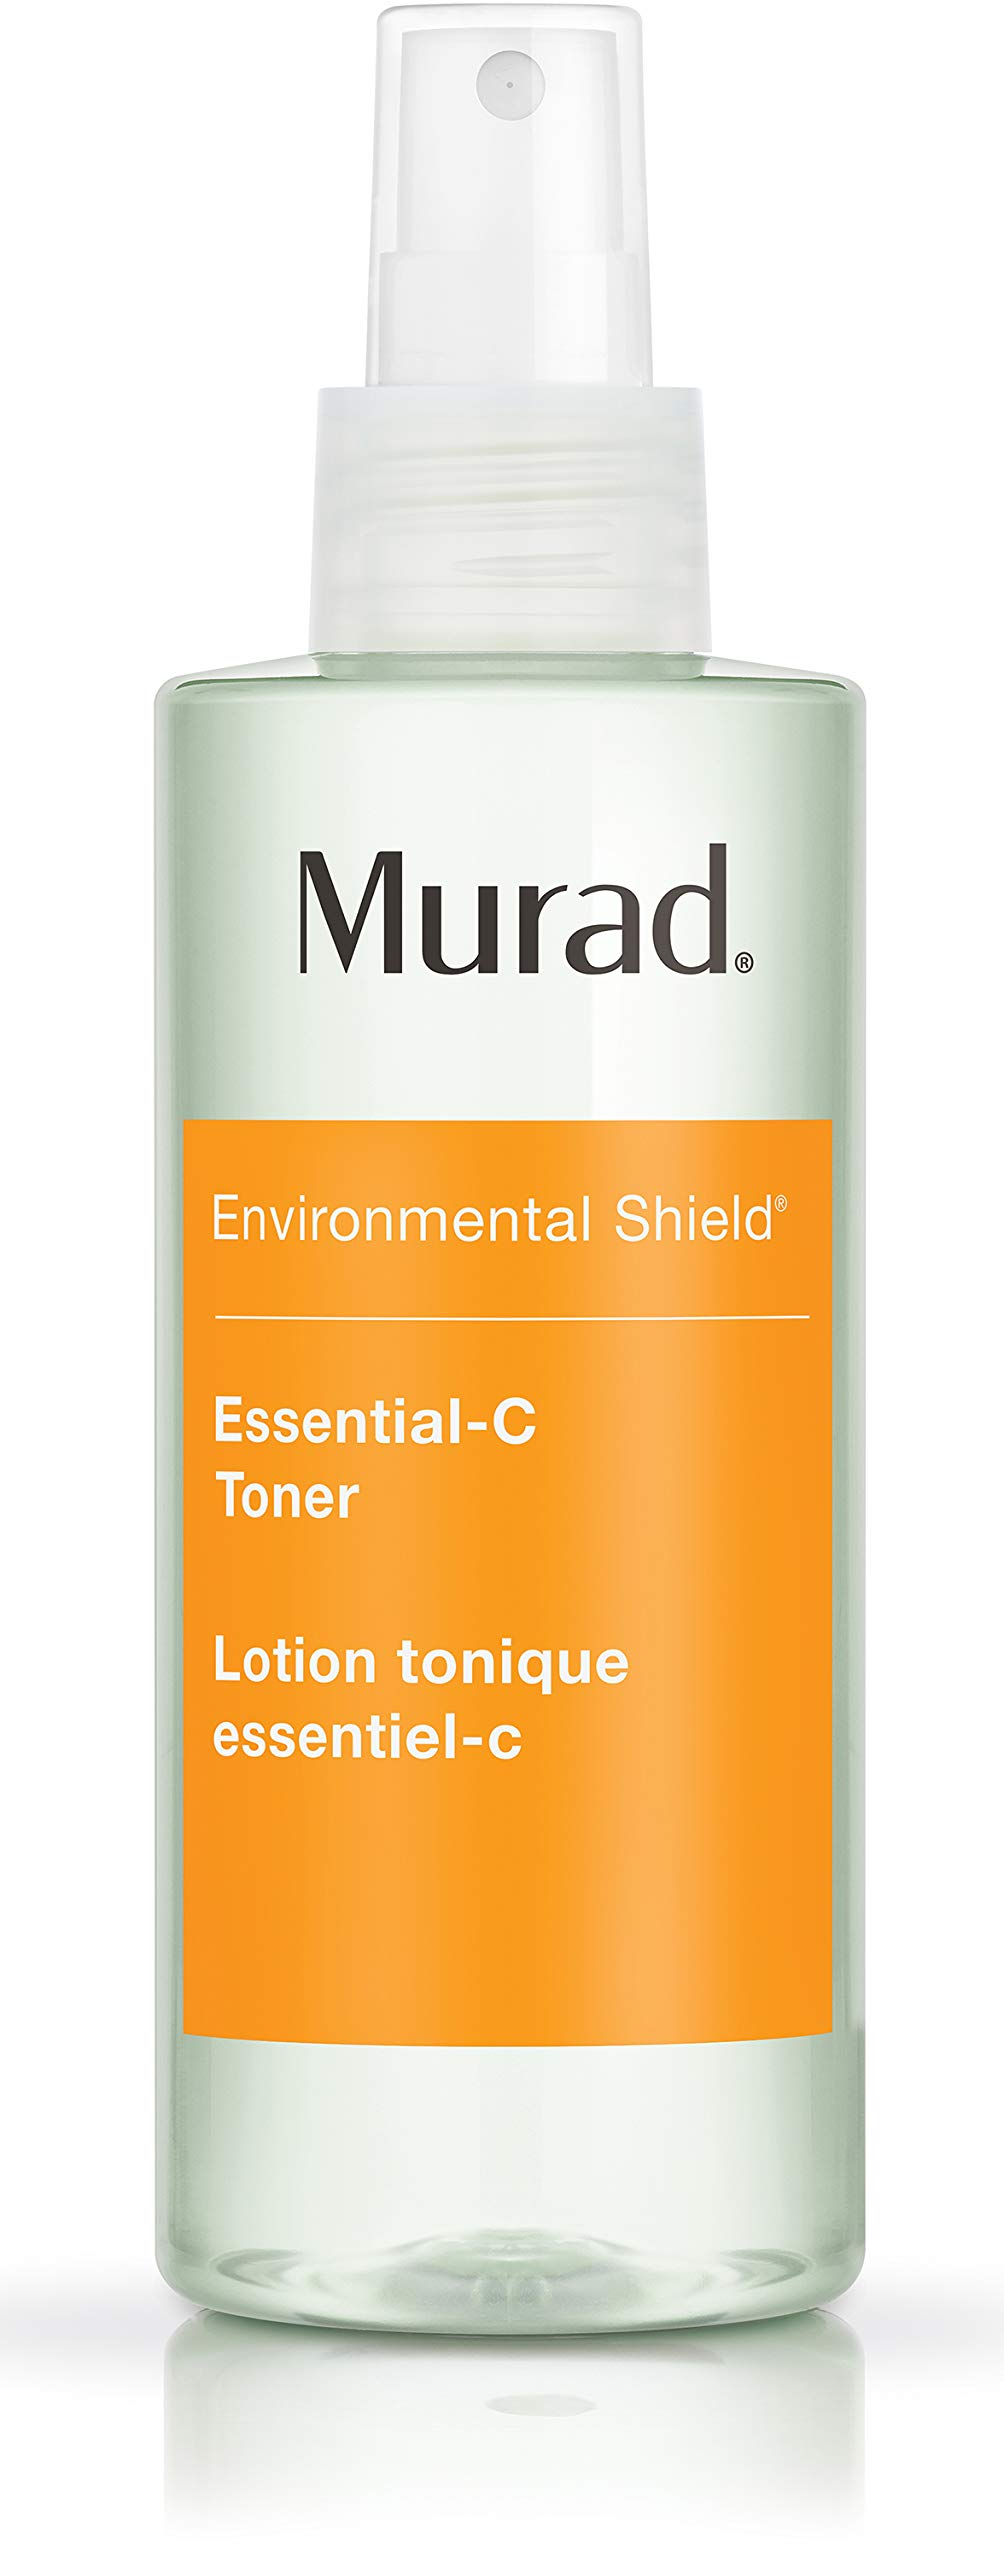 Murad Environmental Shield Essential-C Toner, 1: Clean/Tone, 6 Ounce by Murad